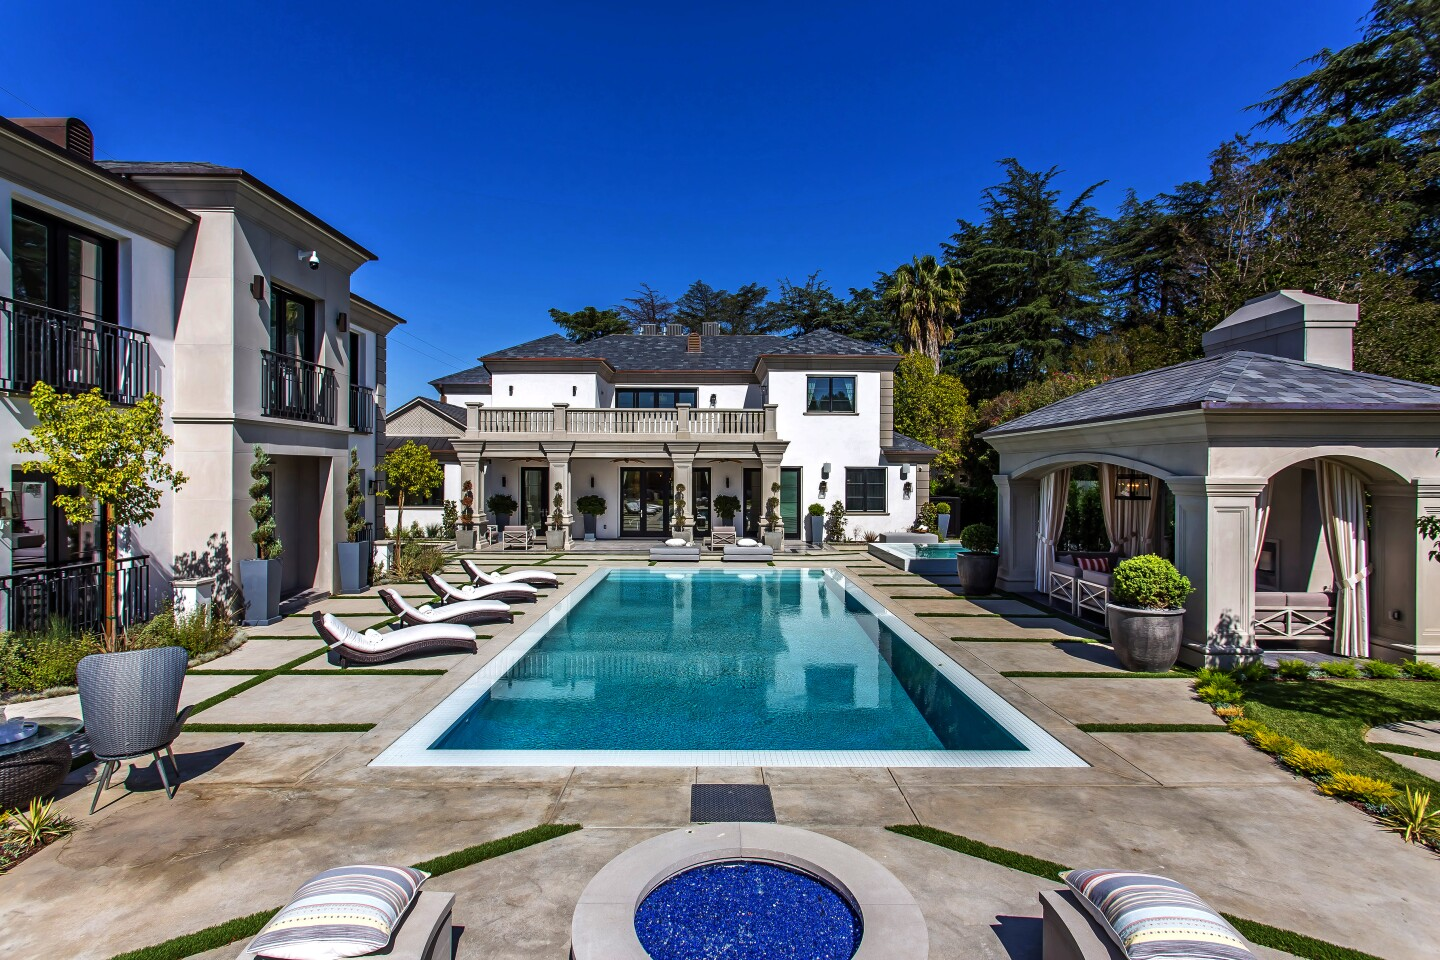 Grammy-winning producer Philip Lawrence shelled out $10.55 million for the Encino home of former Dodger Jimmy Rollins. The neoclassical-inspired home sits behind gates on more than half an acre with a sports court, a resort-style swimming pool and a guesthouse. A wine cellar, an indoor sauna and a grand domed entry are among features of the 14,900-square-foot mansion, which was built in 2017.